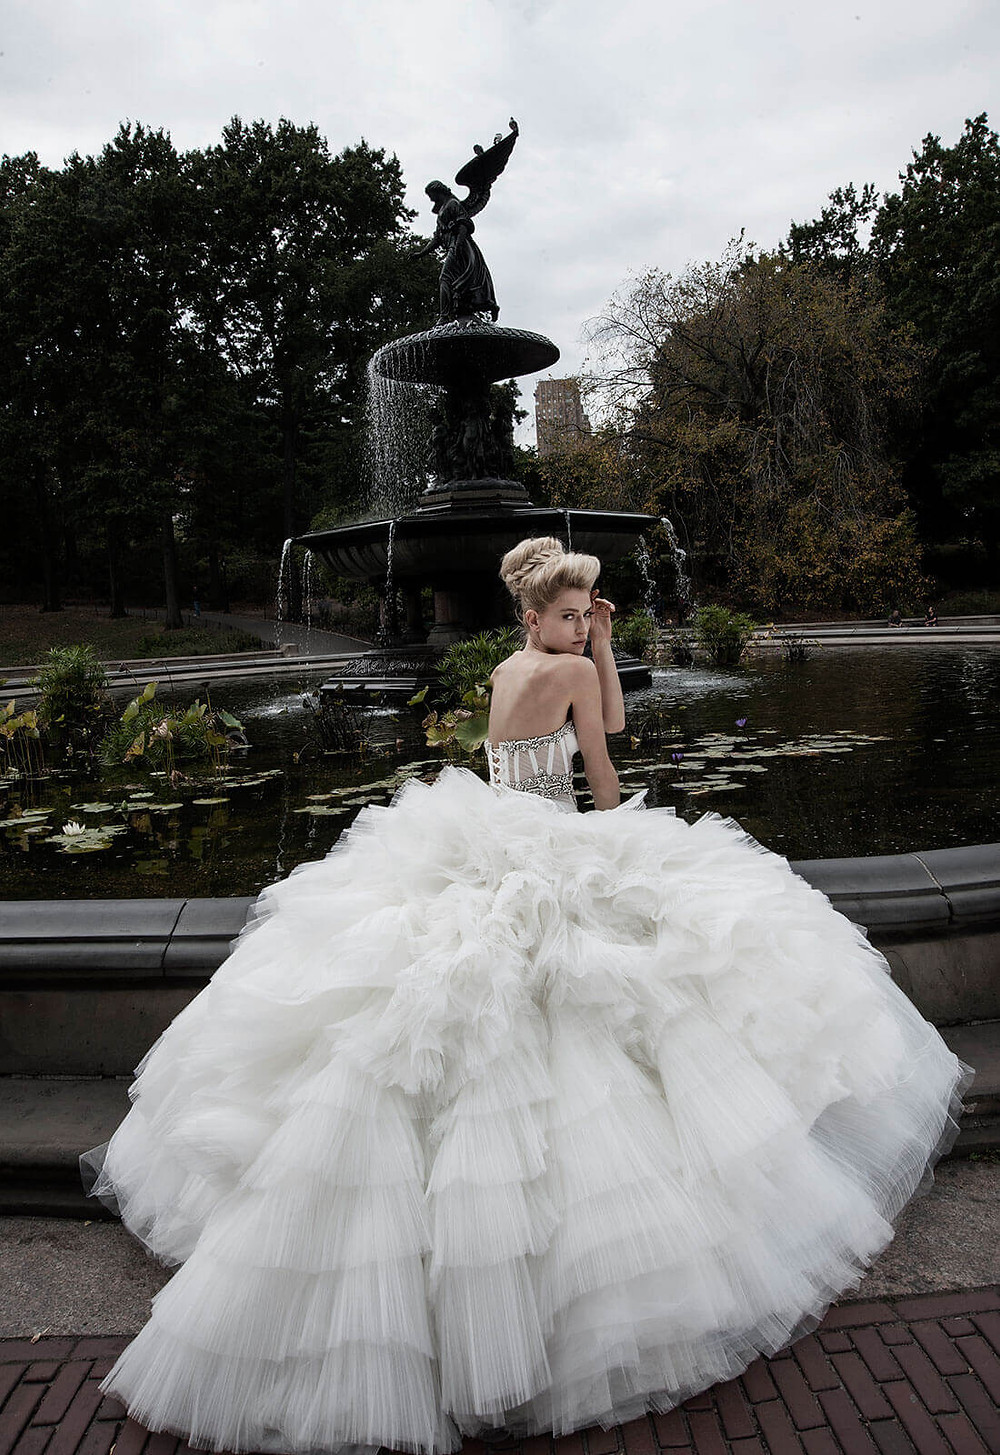 A Pnina Tornai strapless ball gown wedding dress with a layered tulle skirt and a corset with crystals